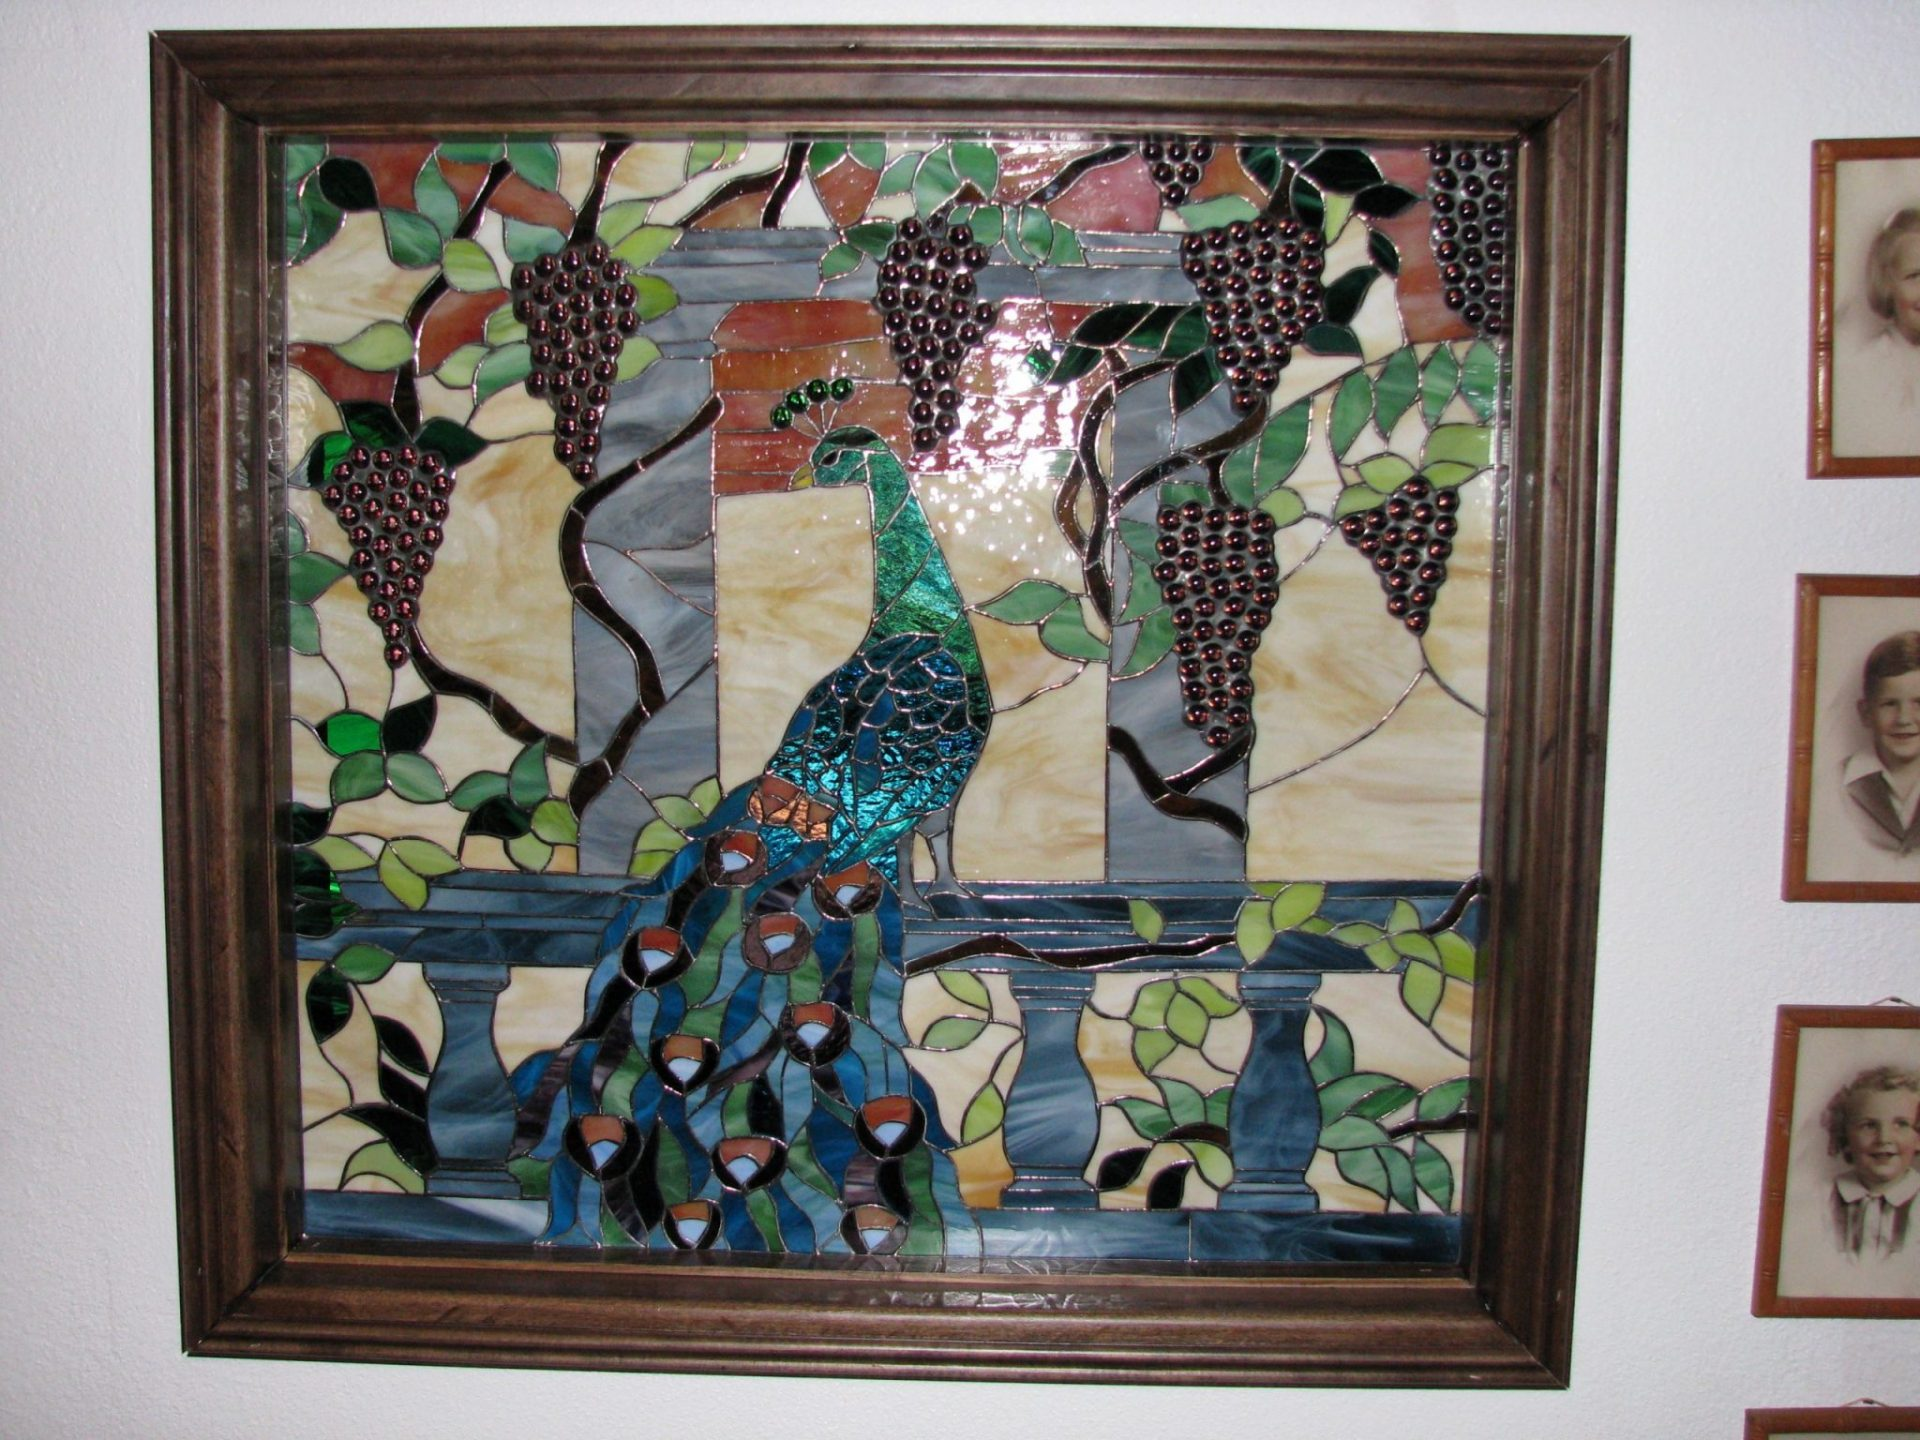 Peacock & Grapes Stained Glass Window Panel Used As A Room Divider